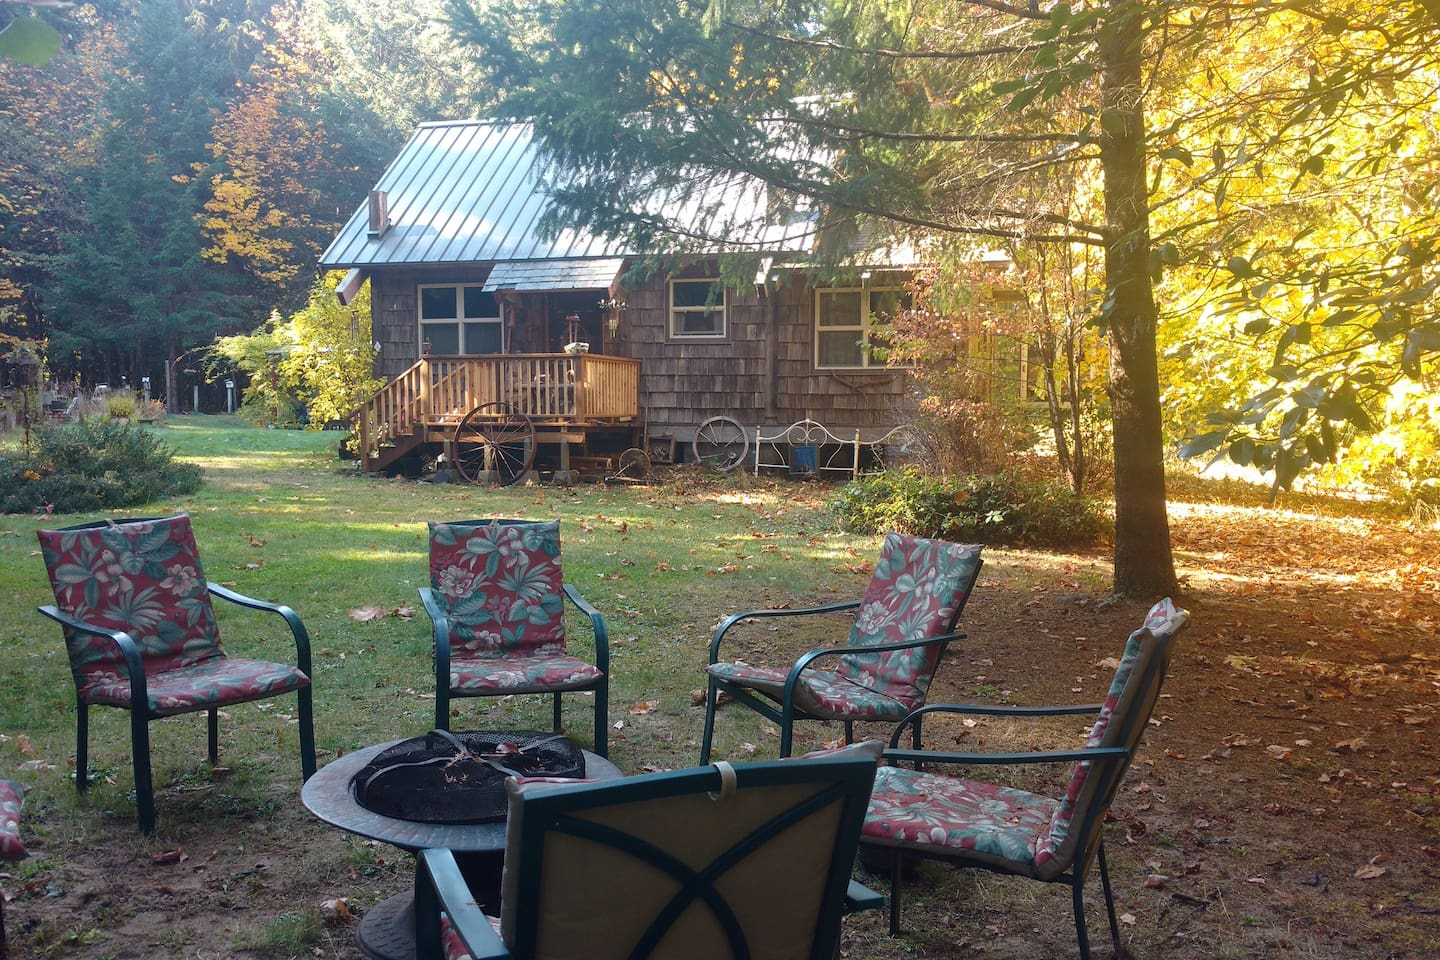 Private fire pit with 6 chairs and BBQ area in Cowboy Cabin lawn